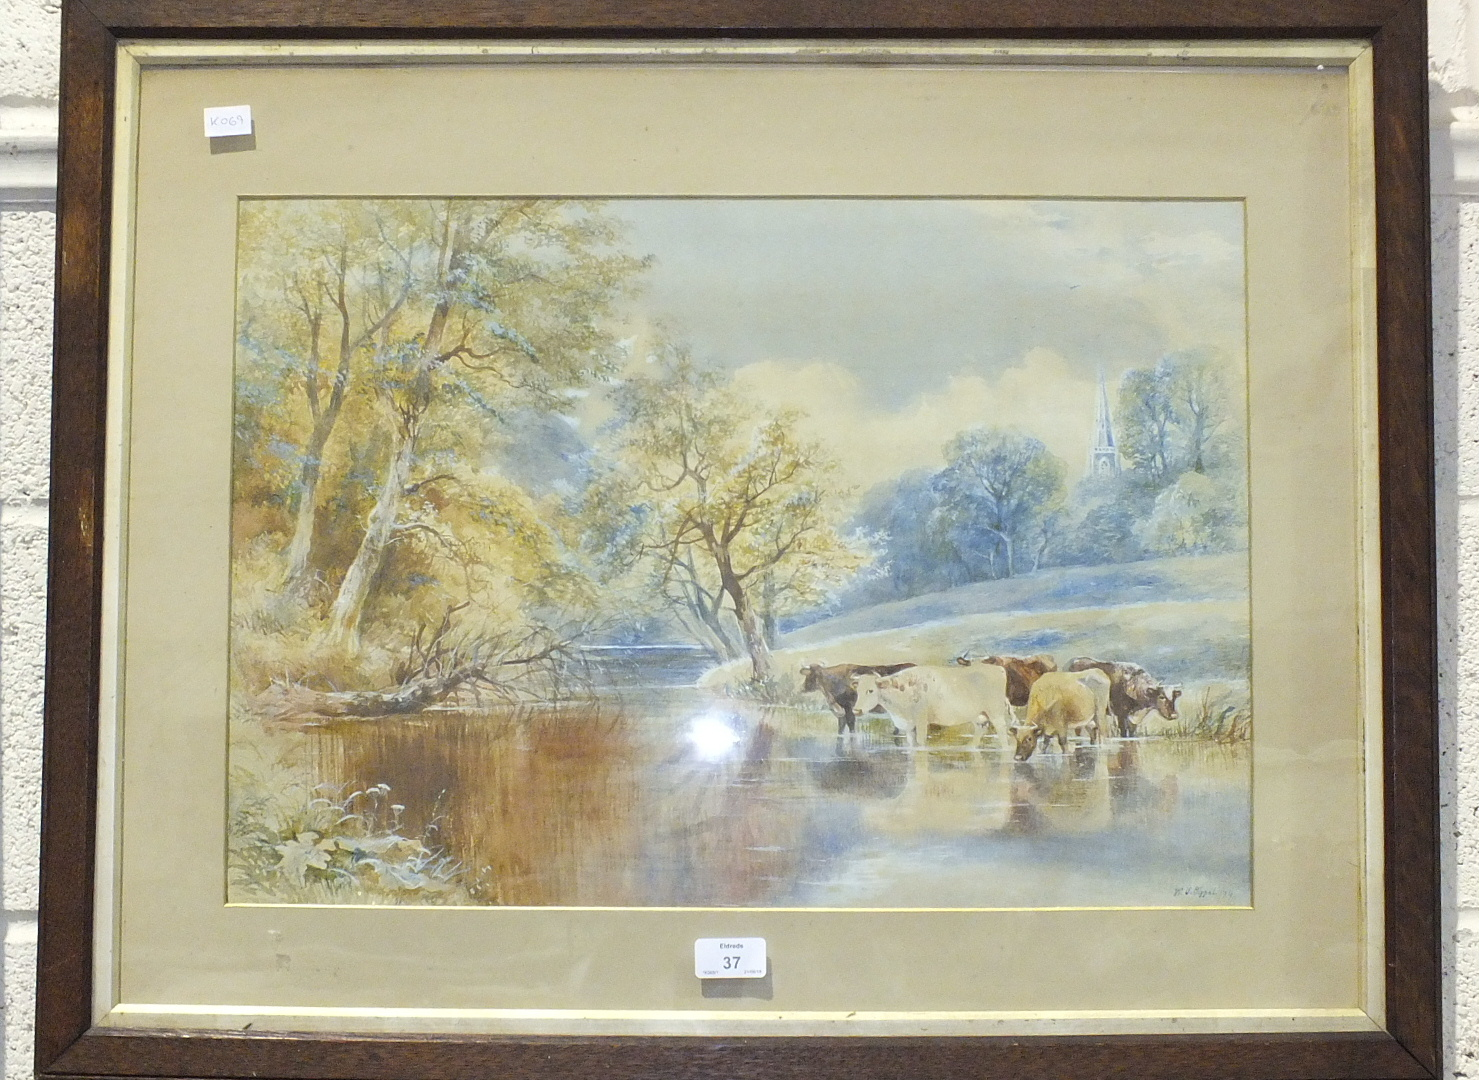 """W V Tippet, """"Cattle in a Stream"""", signed watercolour, dated '79, 39 x 54cm, a framed set of military"""